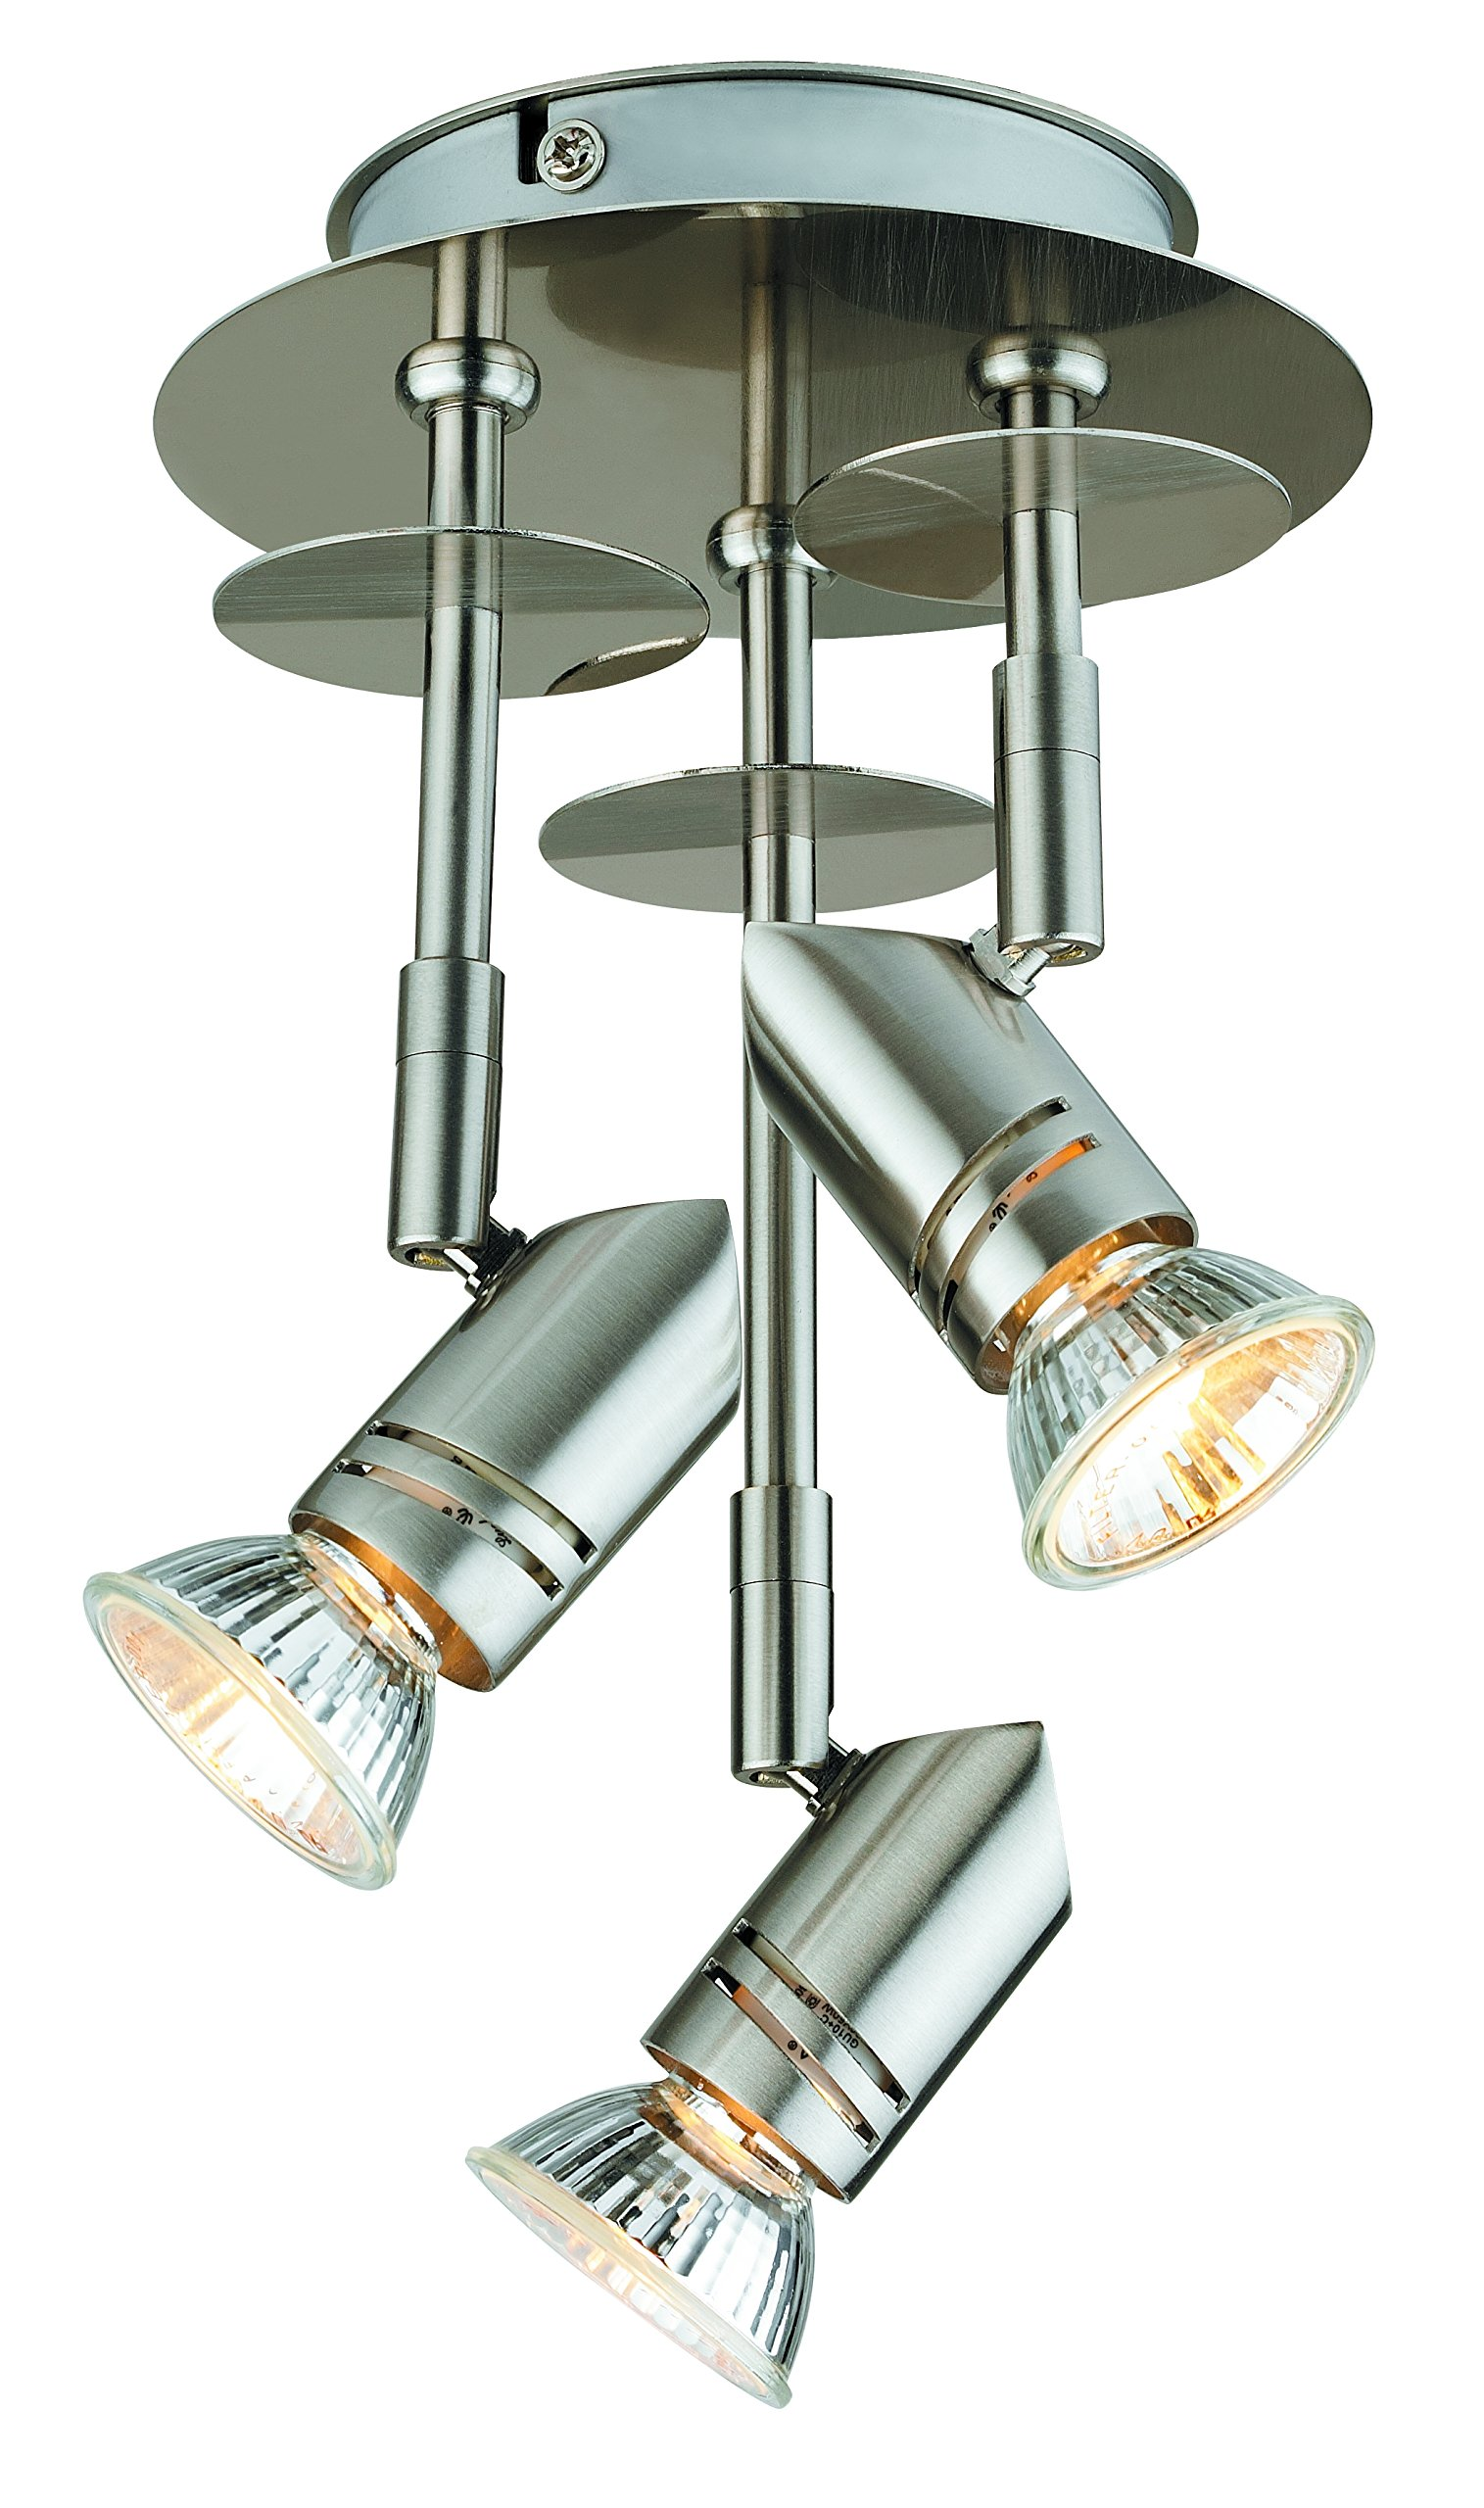 Catalina 19210-000 Three Light Fixed Canopy in Brushed Nickel Finish